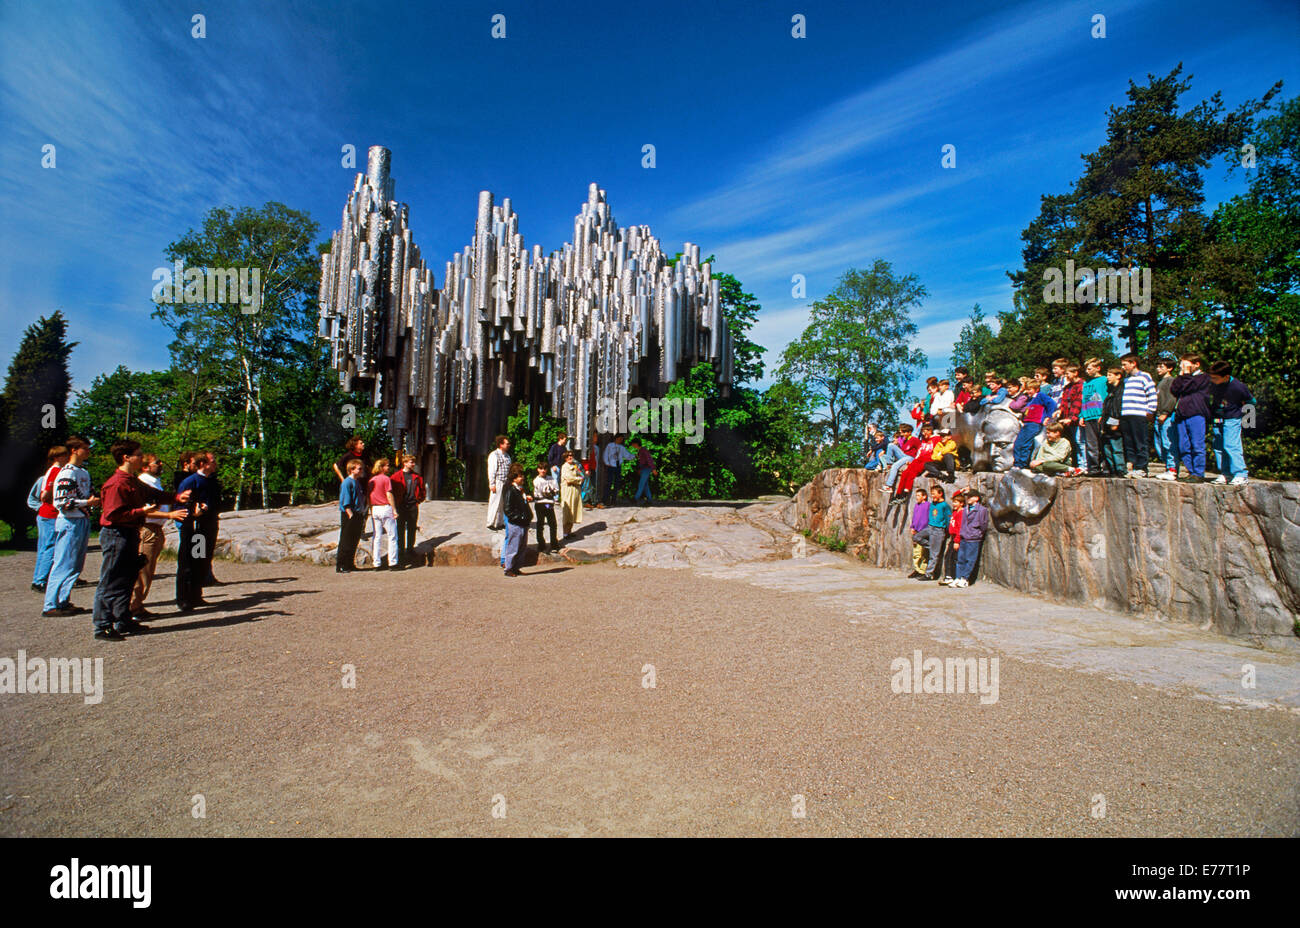 School children and visitors at Sibelius Monument in Helsinki Finland - Stock Image